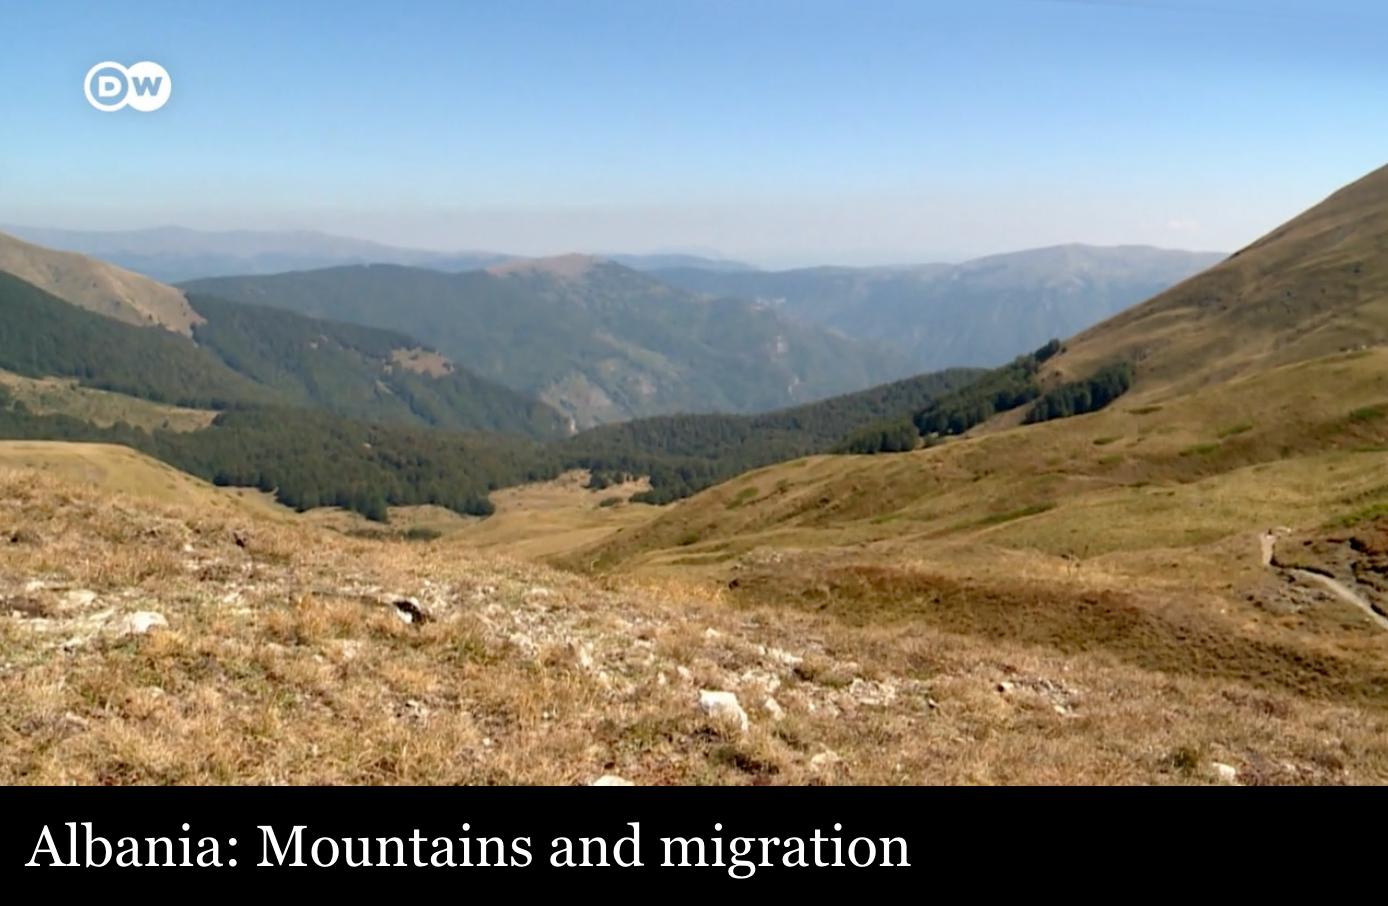 Albanian mountain dwellers can make now a better living with new ideas